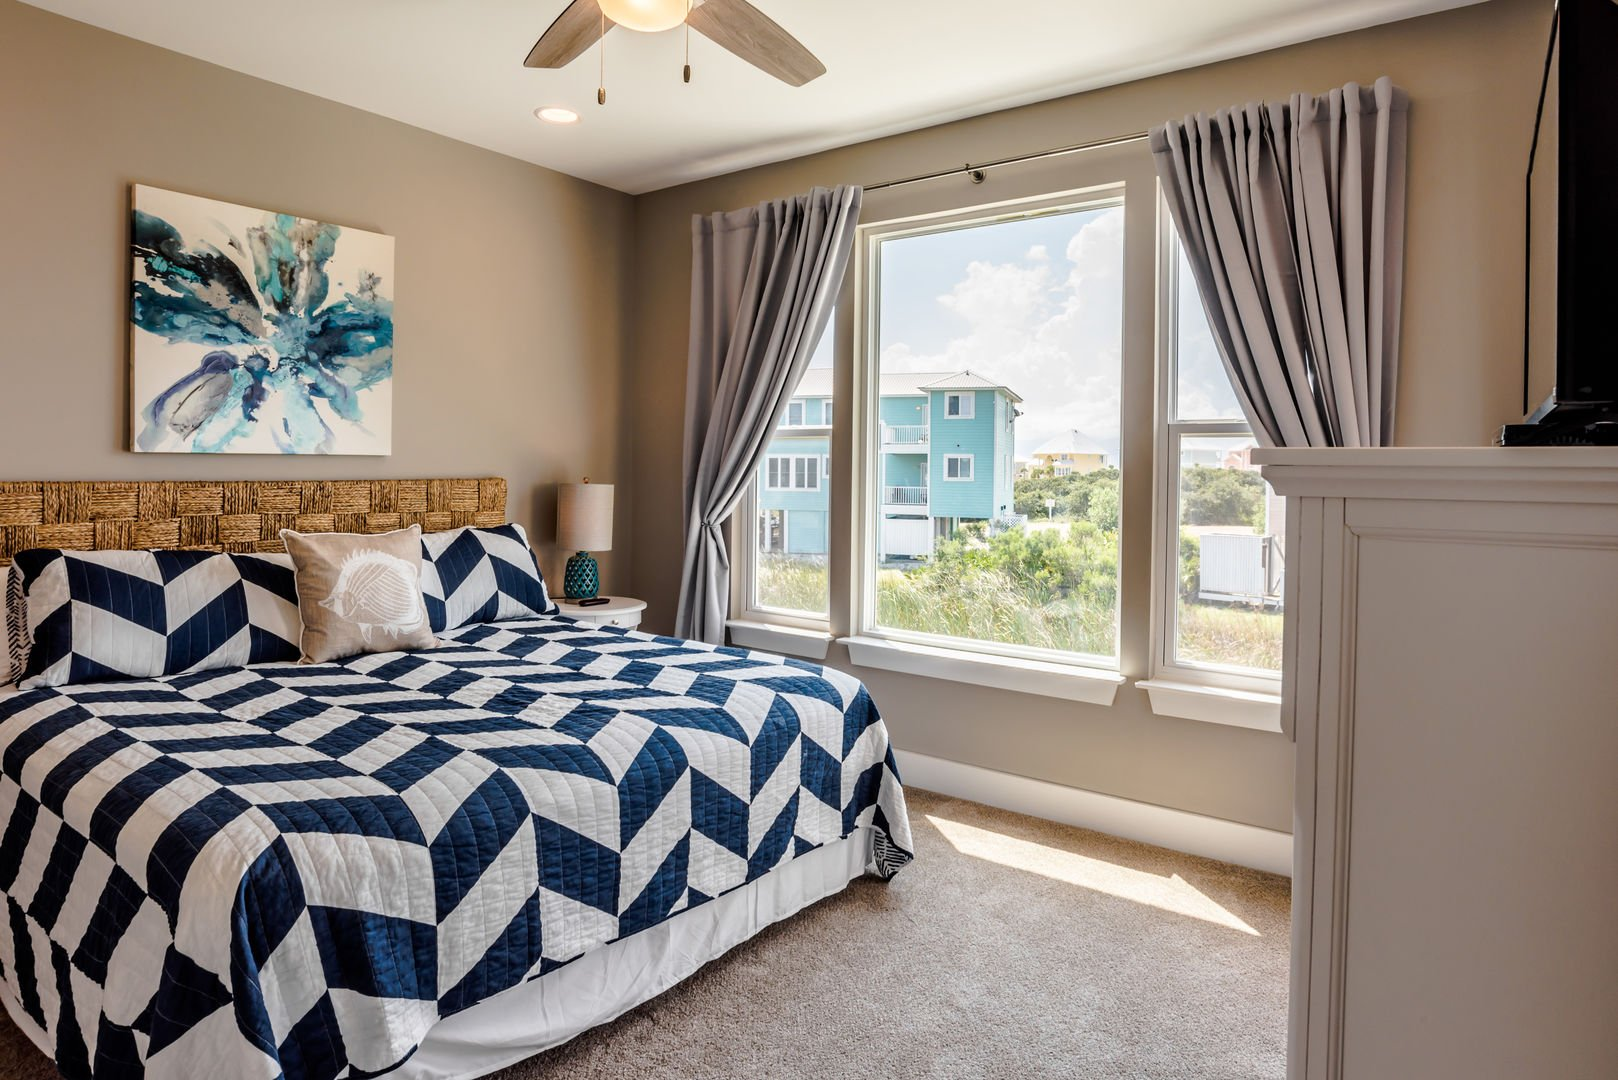 The Master Bedroom Has a King Bed with Access to the Deck